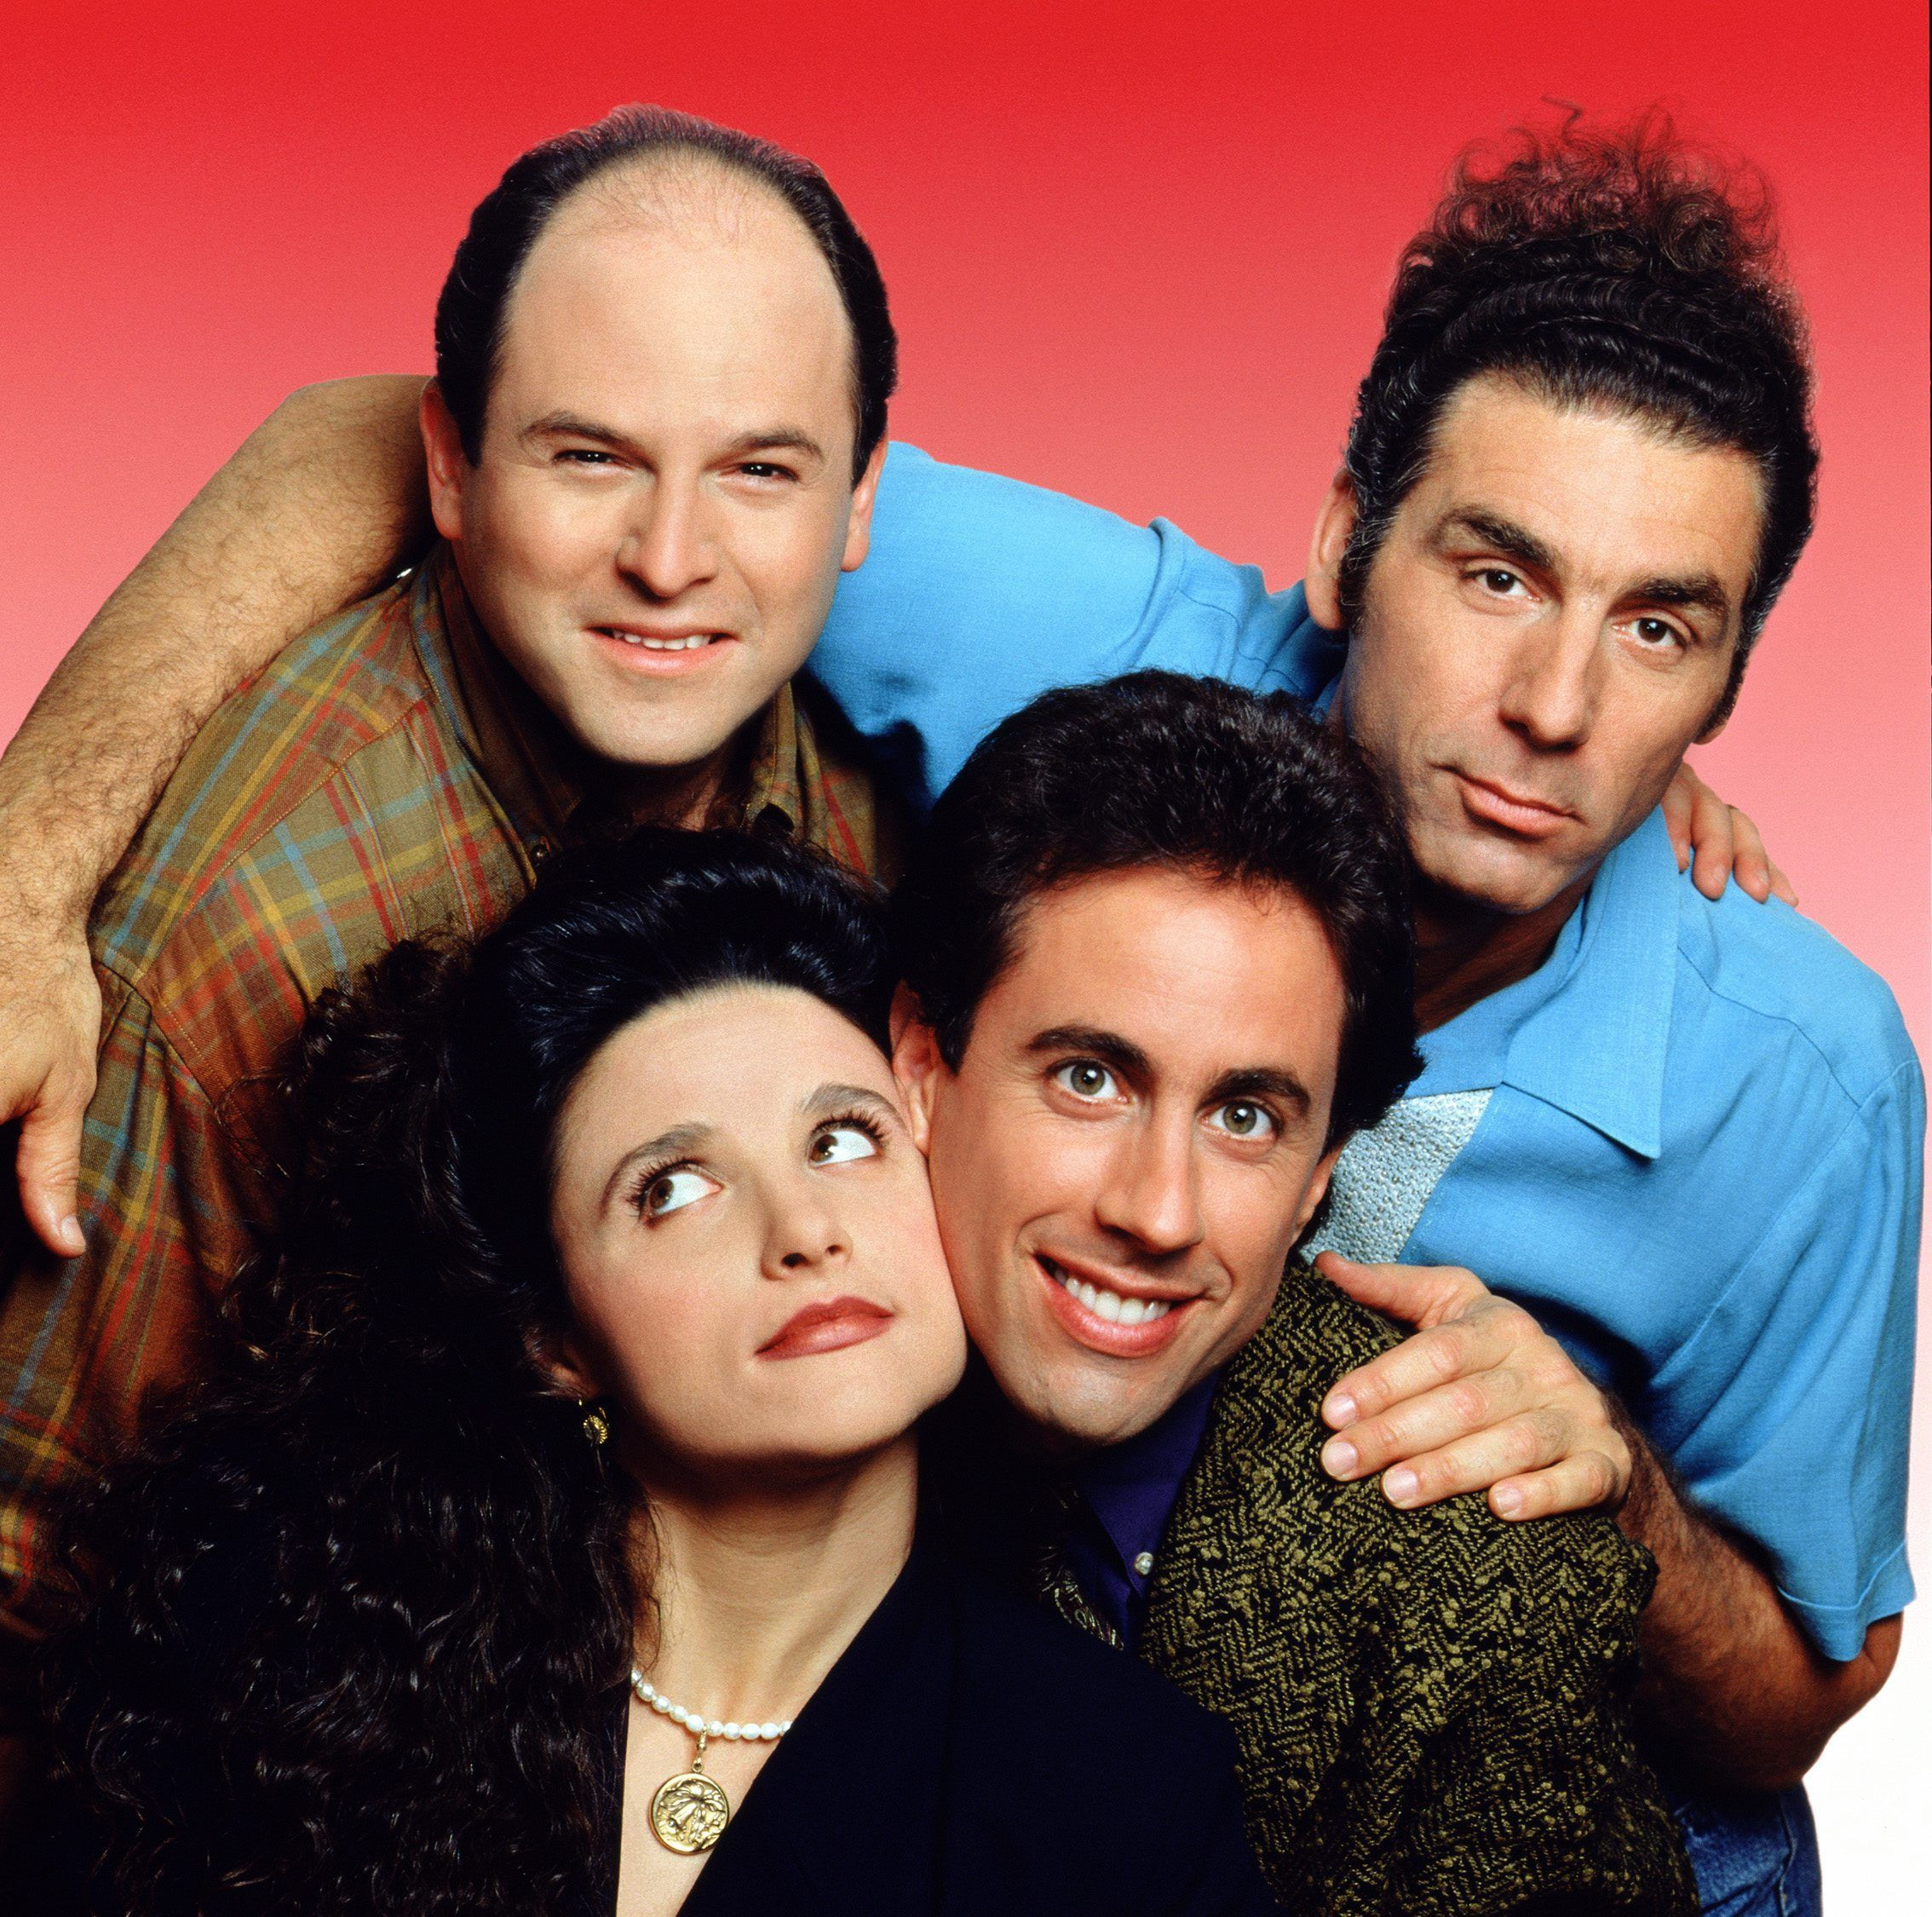 The 10 Most Streamworthy Episodes Of 'Seinfeld' - Fame10